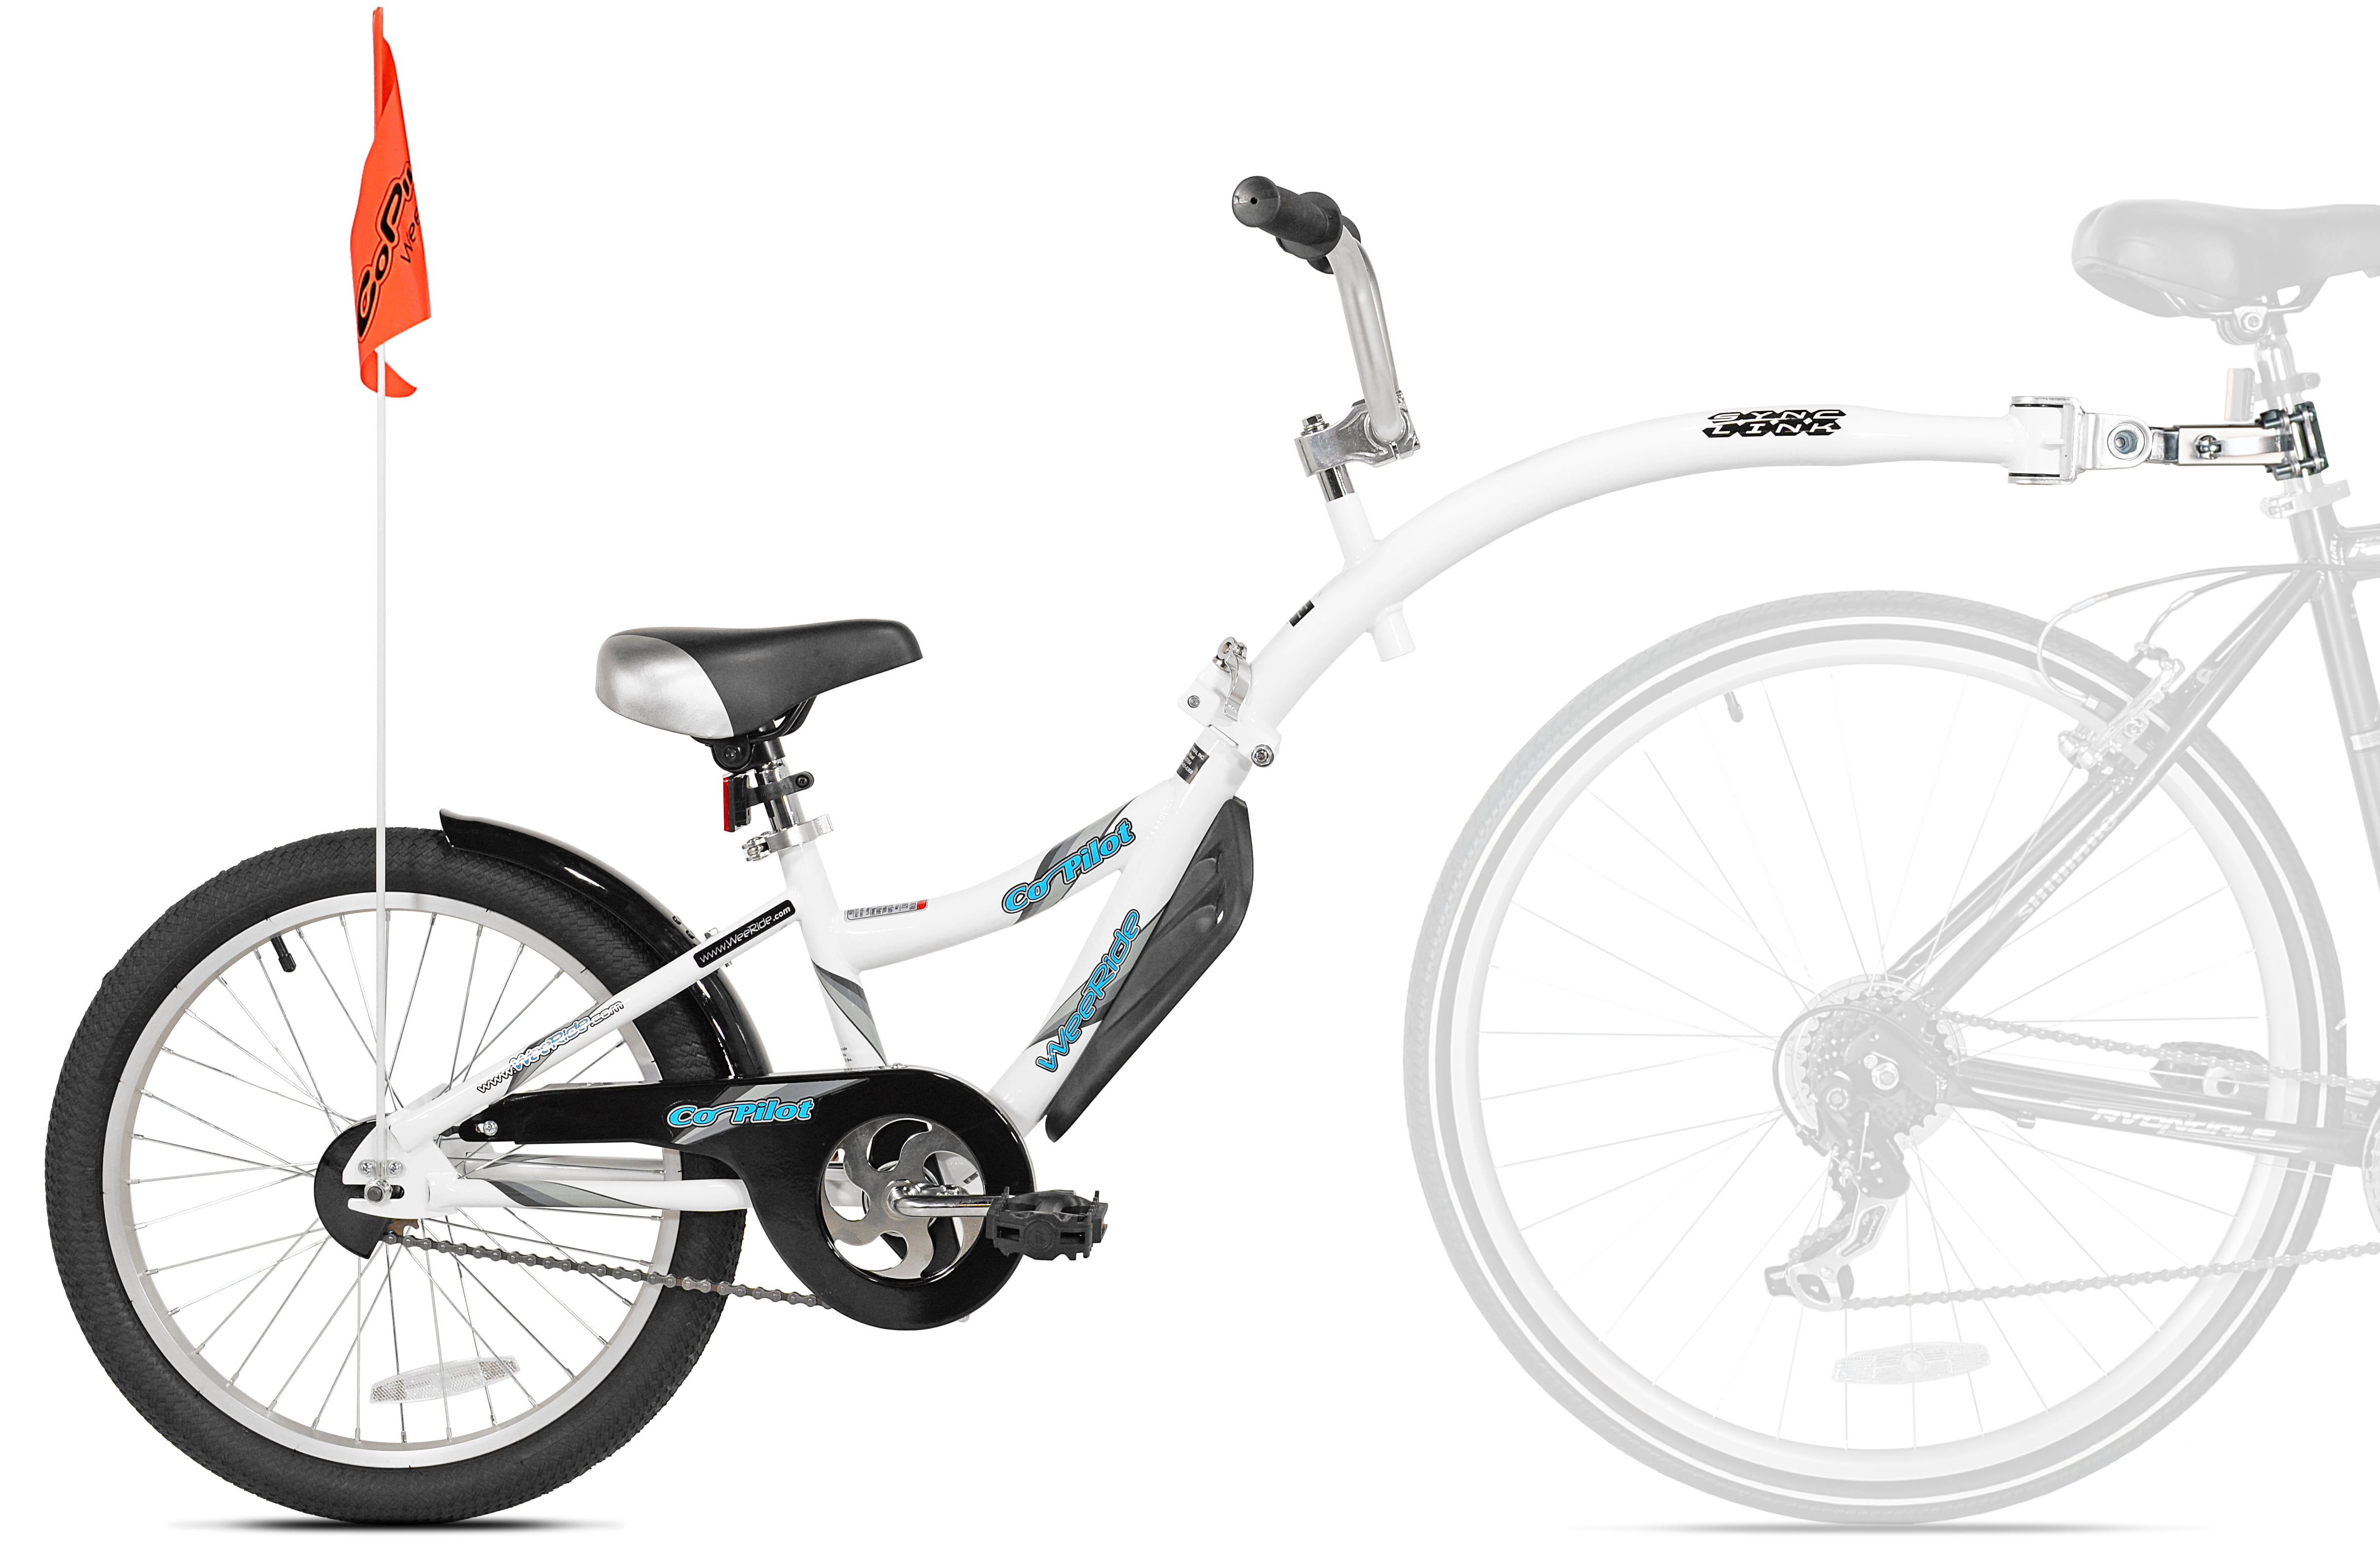 """WeeRide 20"""", Co-Pilot Child Bike Trailer, White, For Ages 5-9 - Walmart.com"""